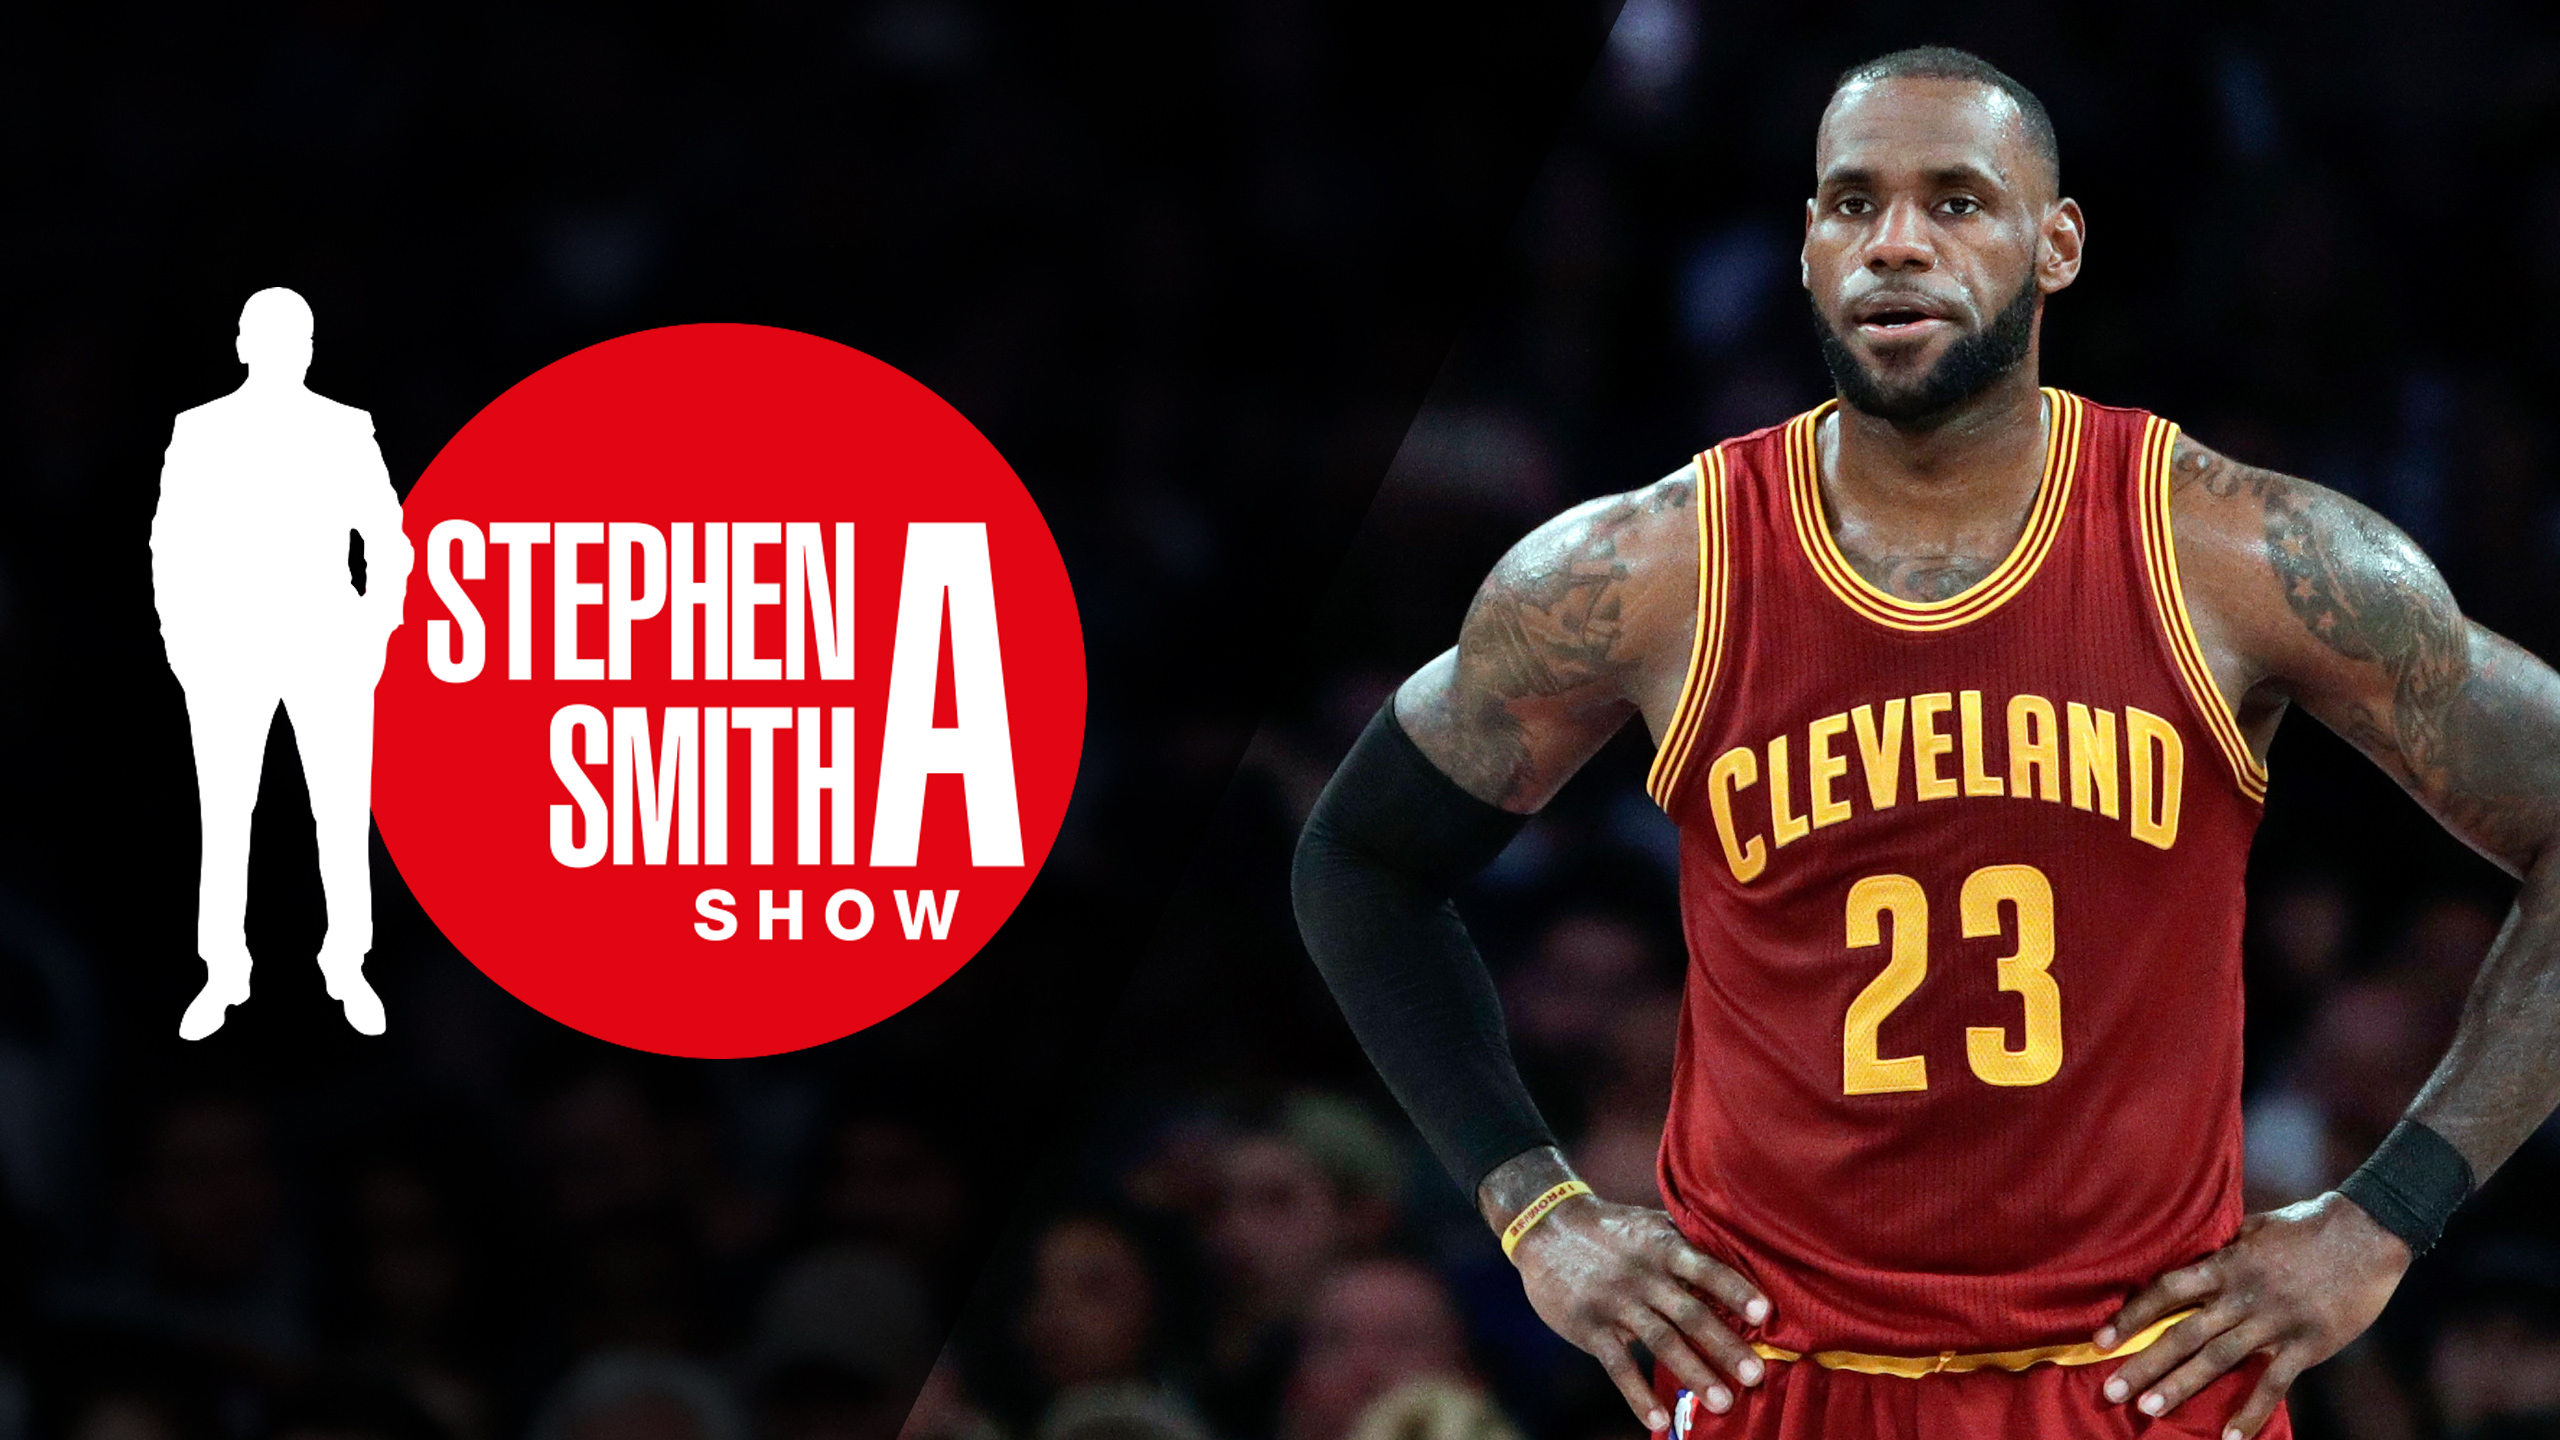 Thu, 8/16 - The Stephen A. Smith Show